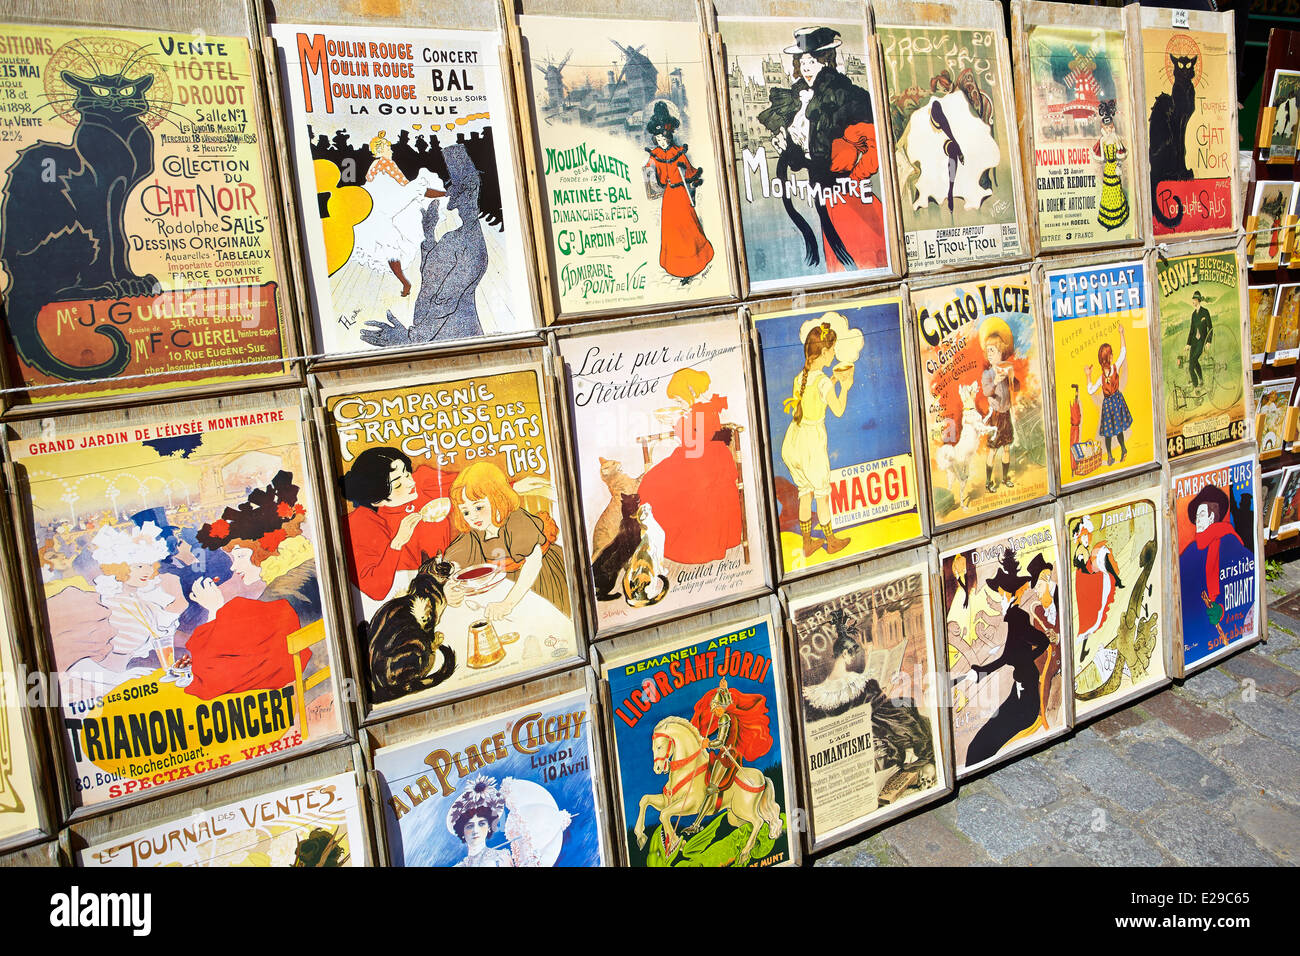 Poster Reproduction Tableau Reproduction Of Old Posters Montmartre District Paris France